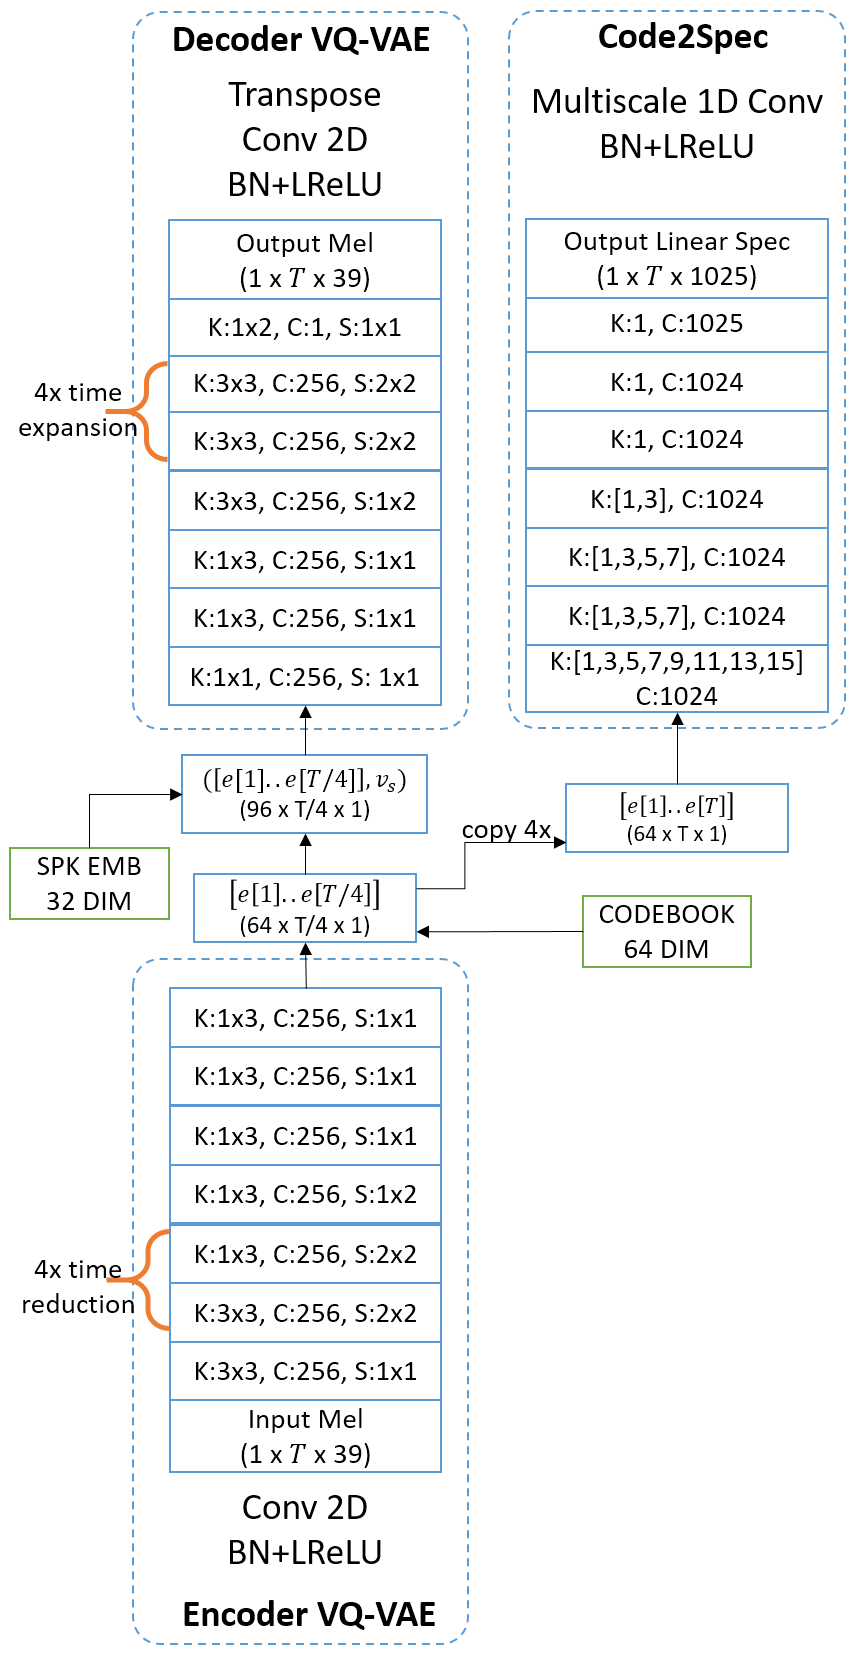 VQVAE Unsupervised Unit Discovery and Multi-scale Code2Spec